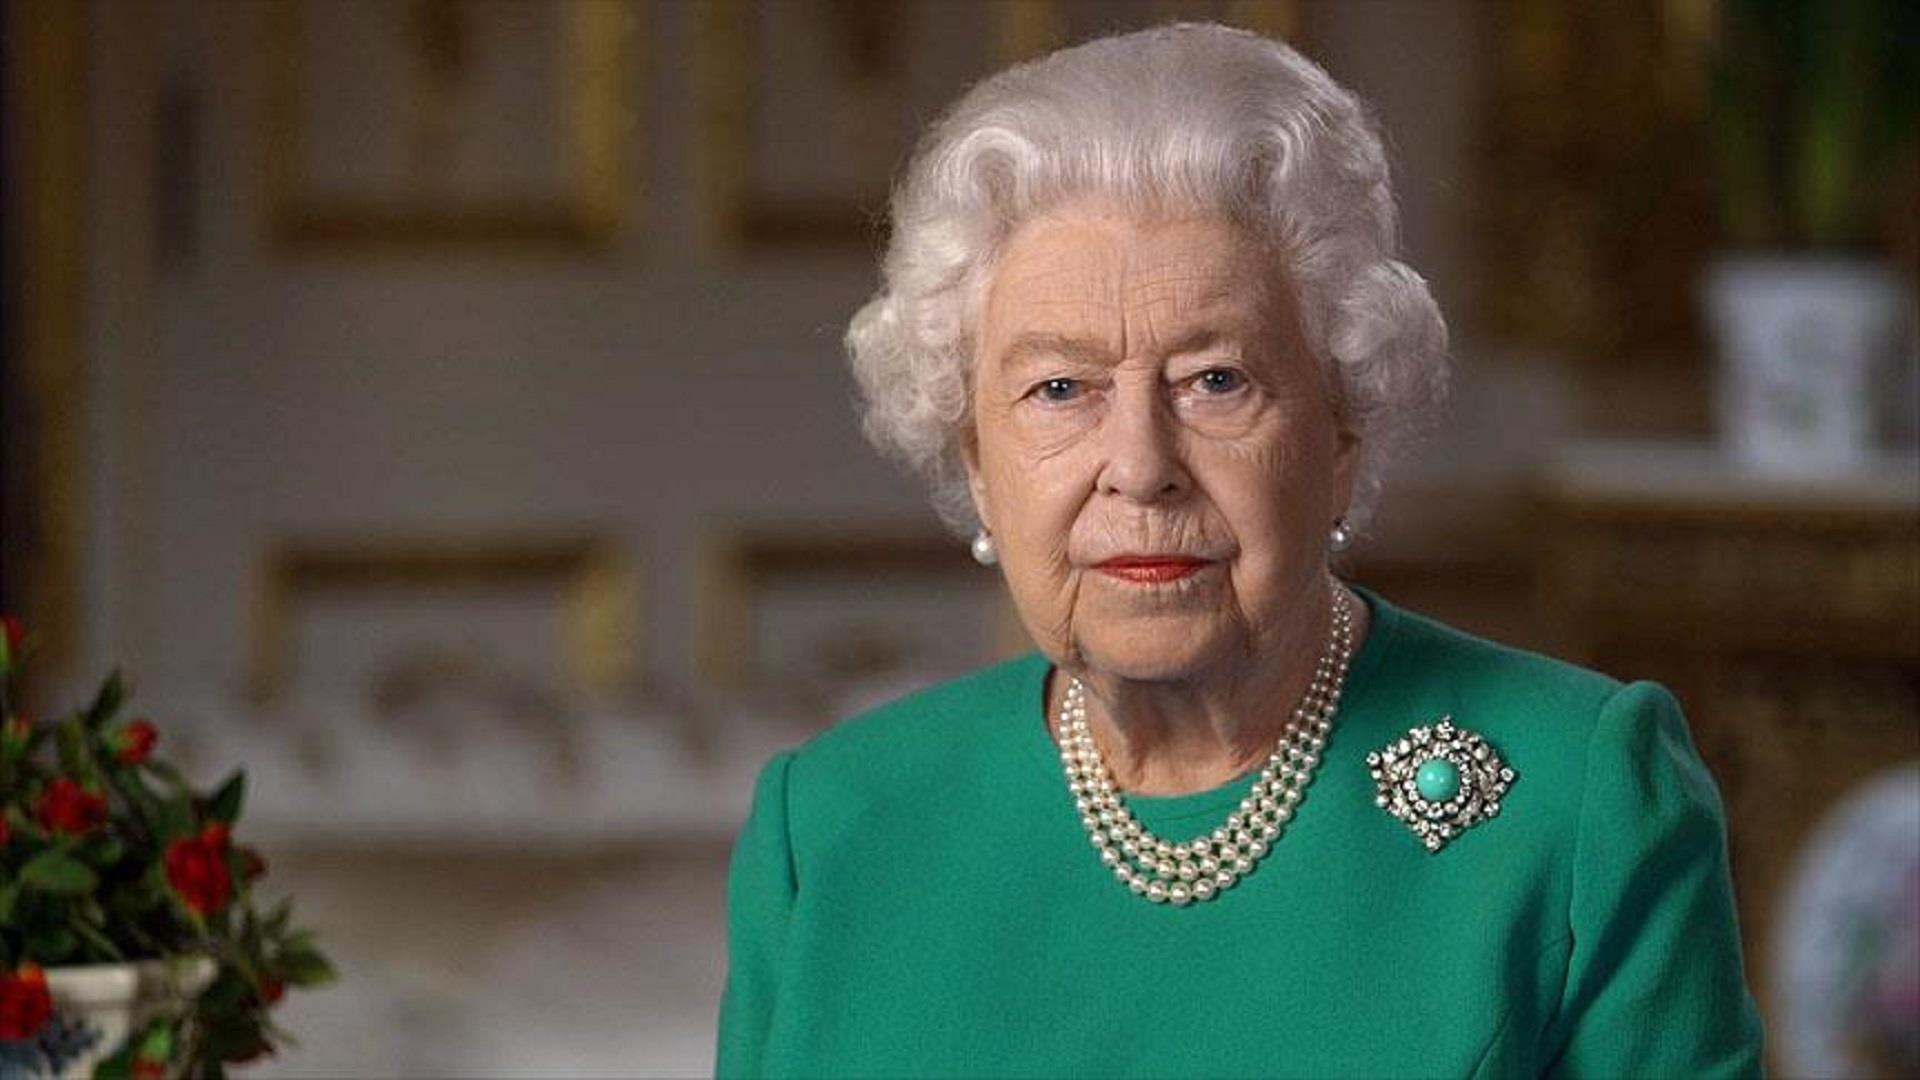 Queen Elizabeth II calls for 'good-humored resolve' as coronavirus deaths rise in U.K.